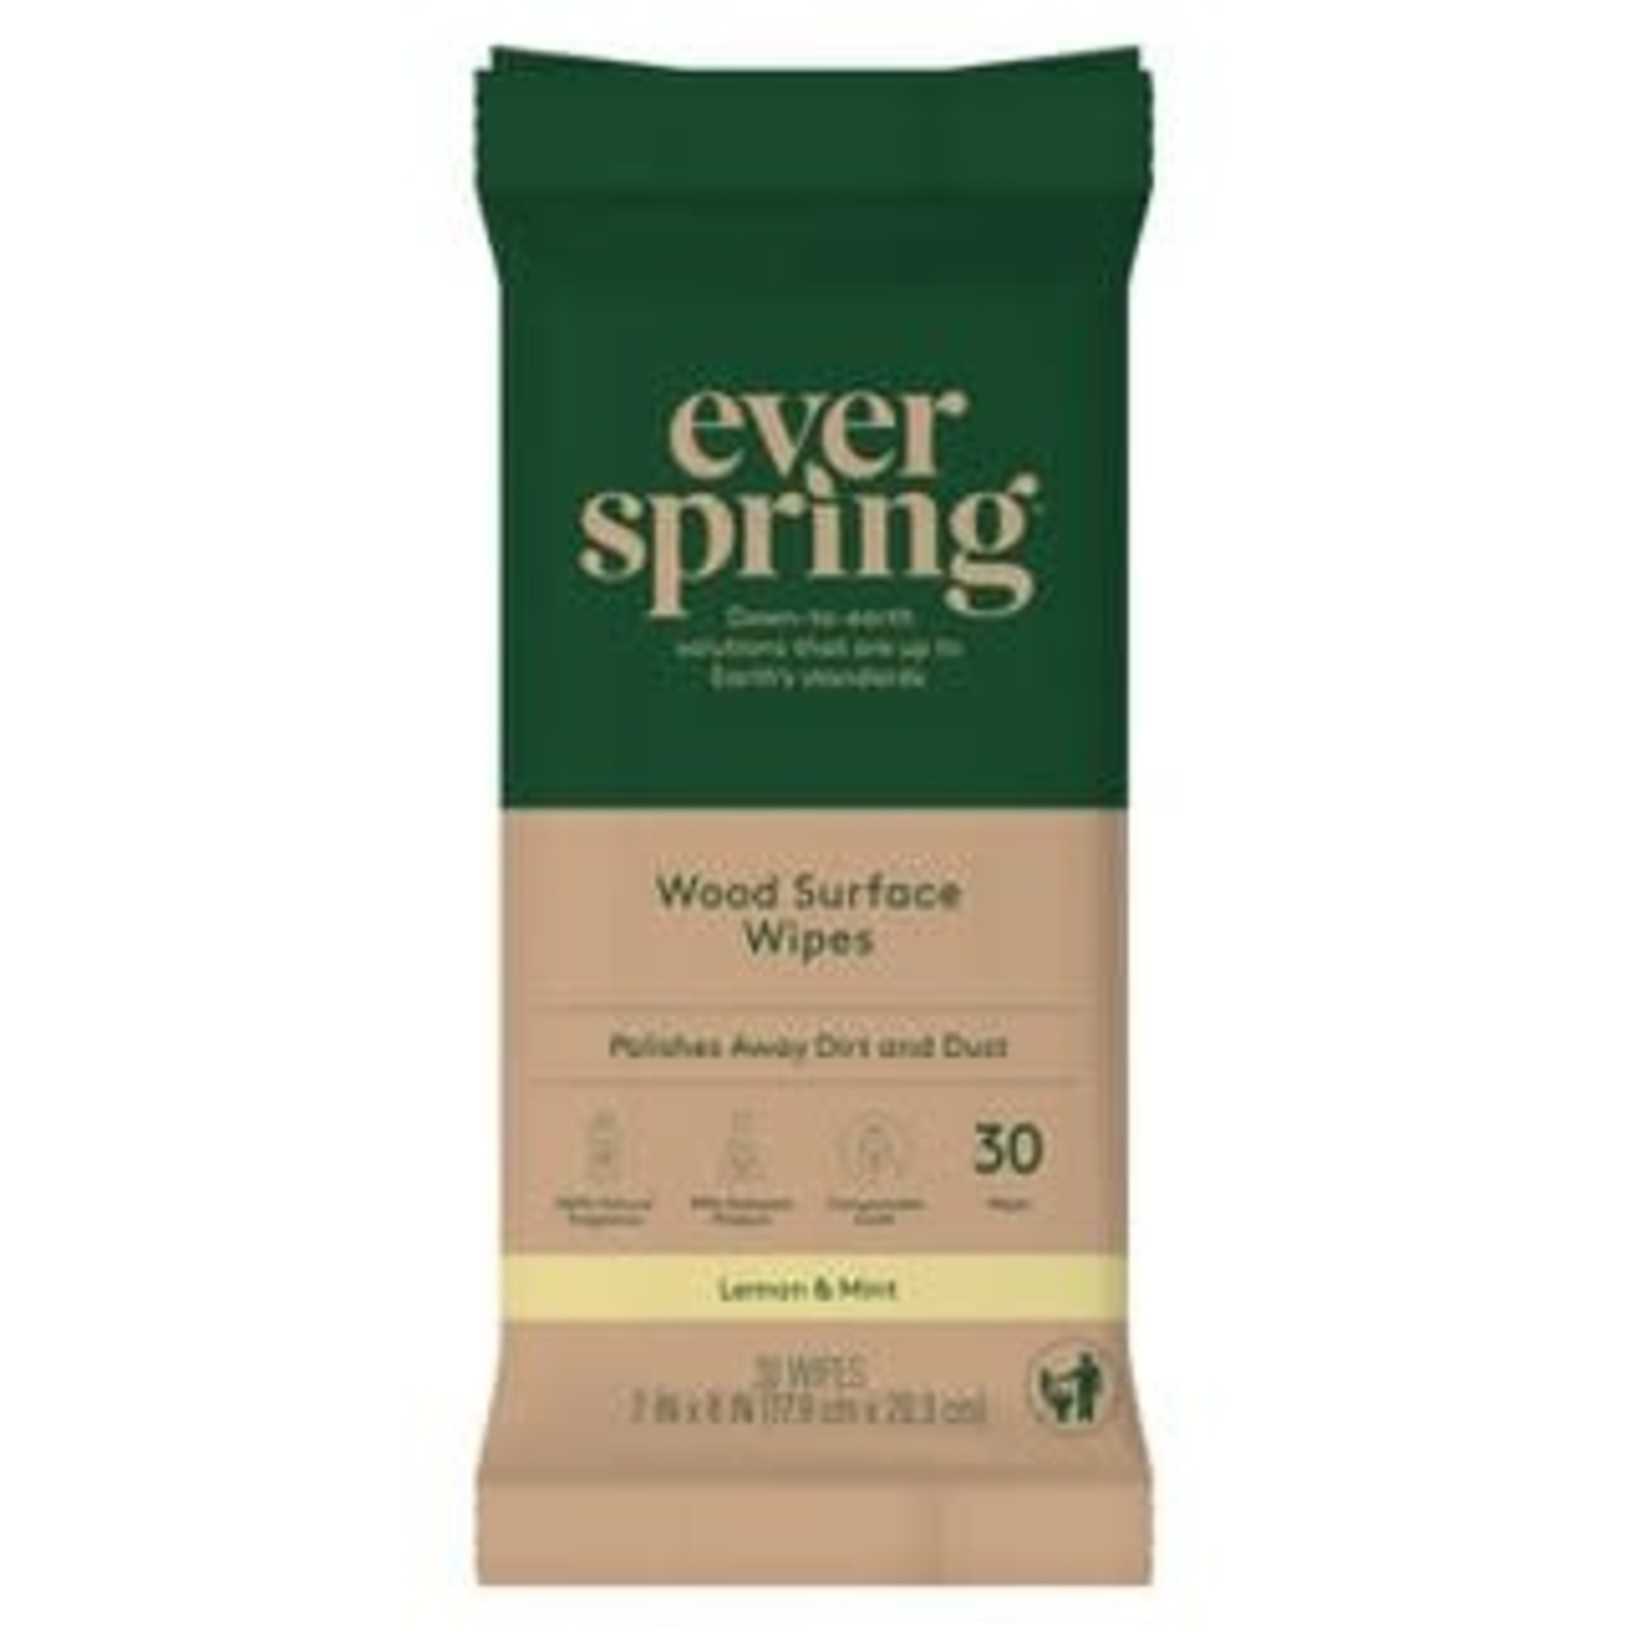 Wood Surface Specialty Wipes Lemon & Mint - 30ct - Everspring